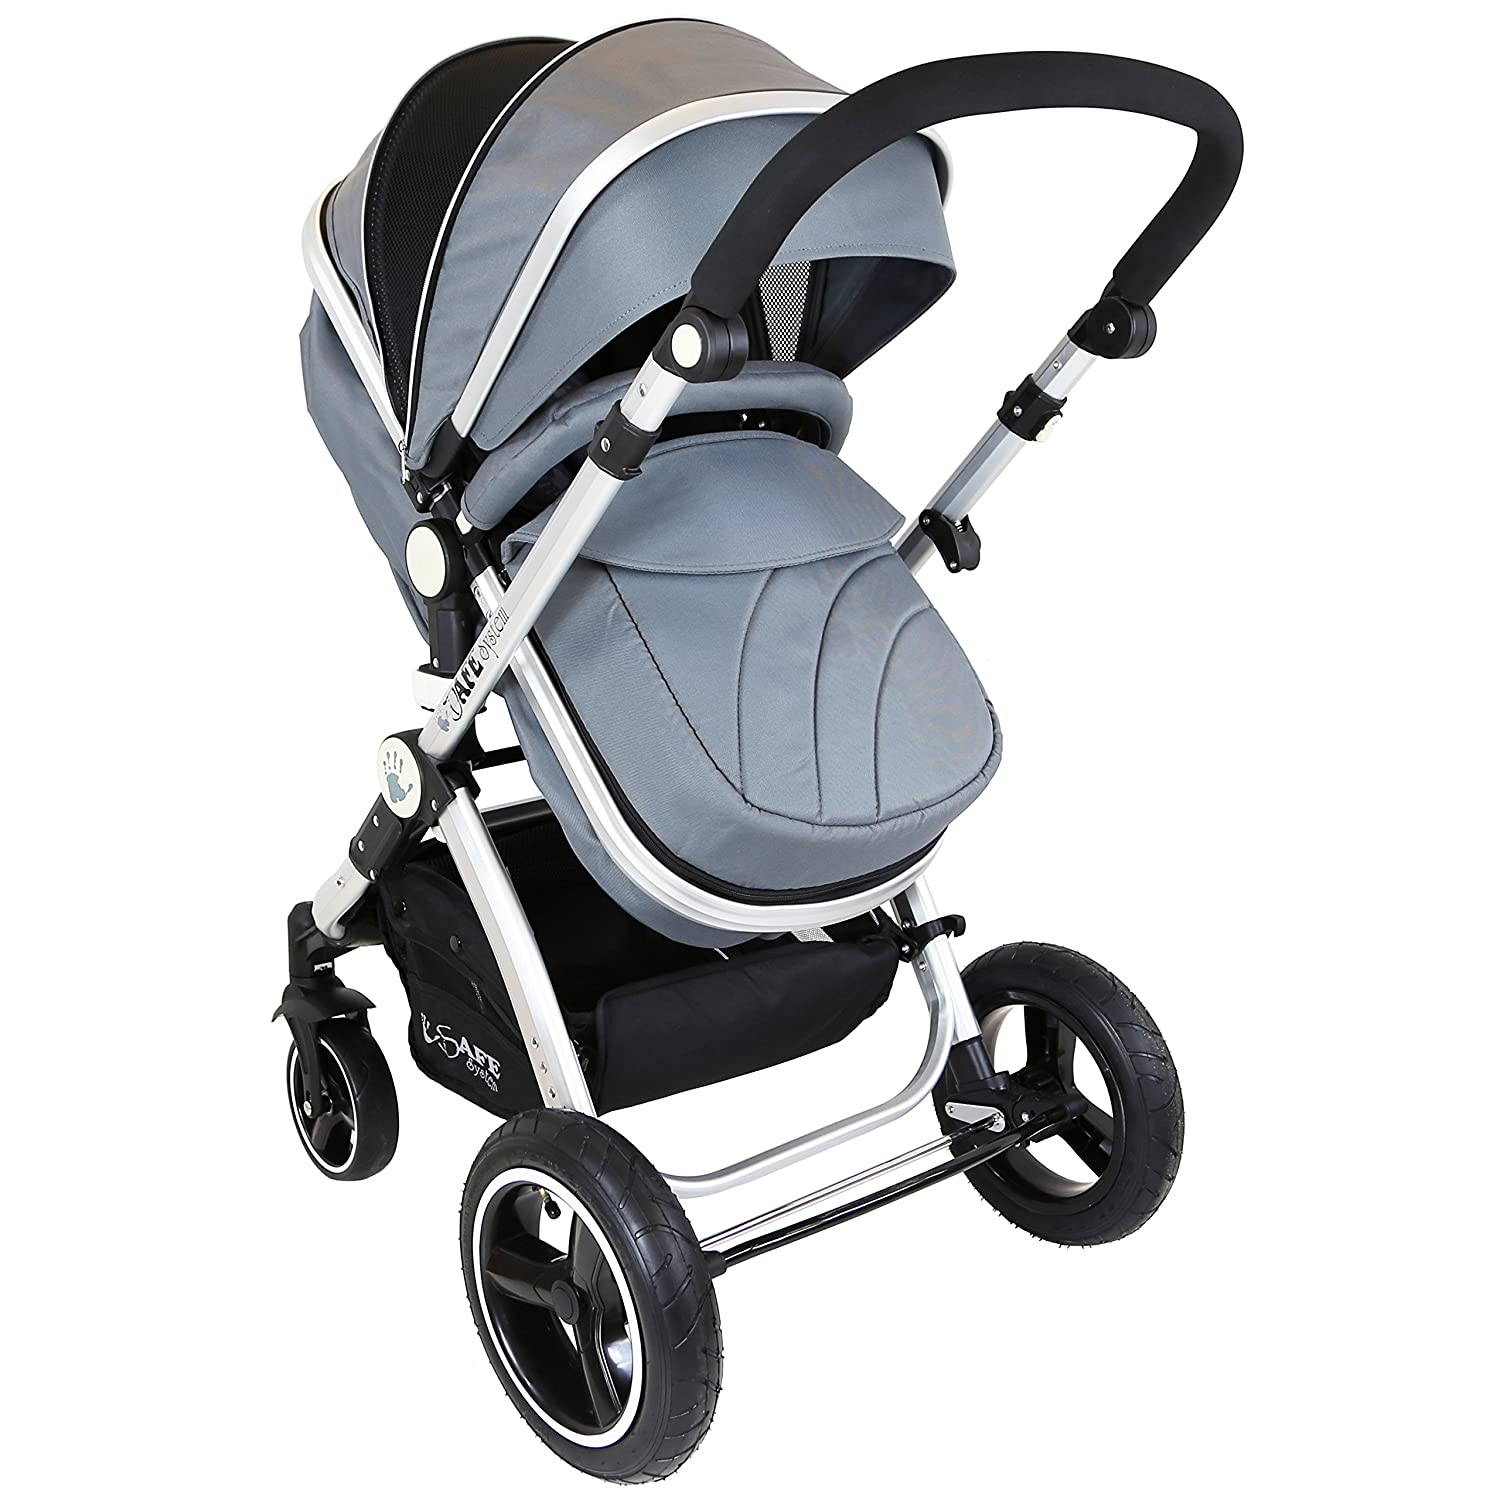 iSafe Baby Pram System 2in1 - Grey PrmSysC&M_Bed